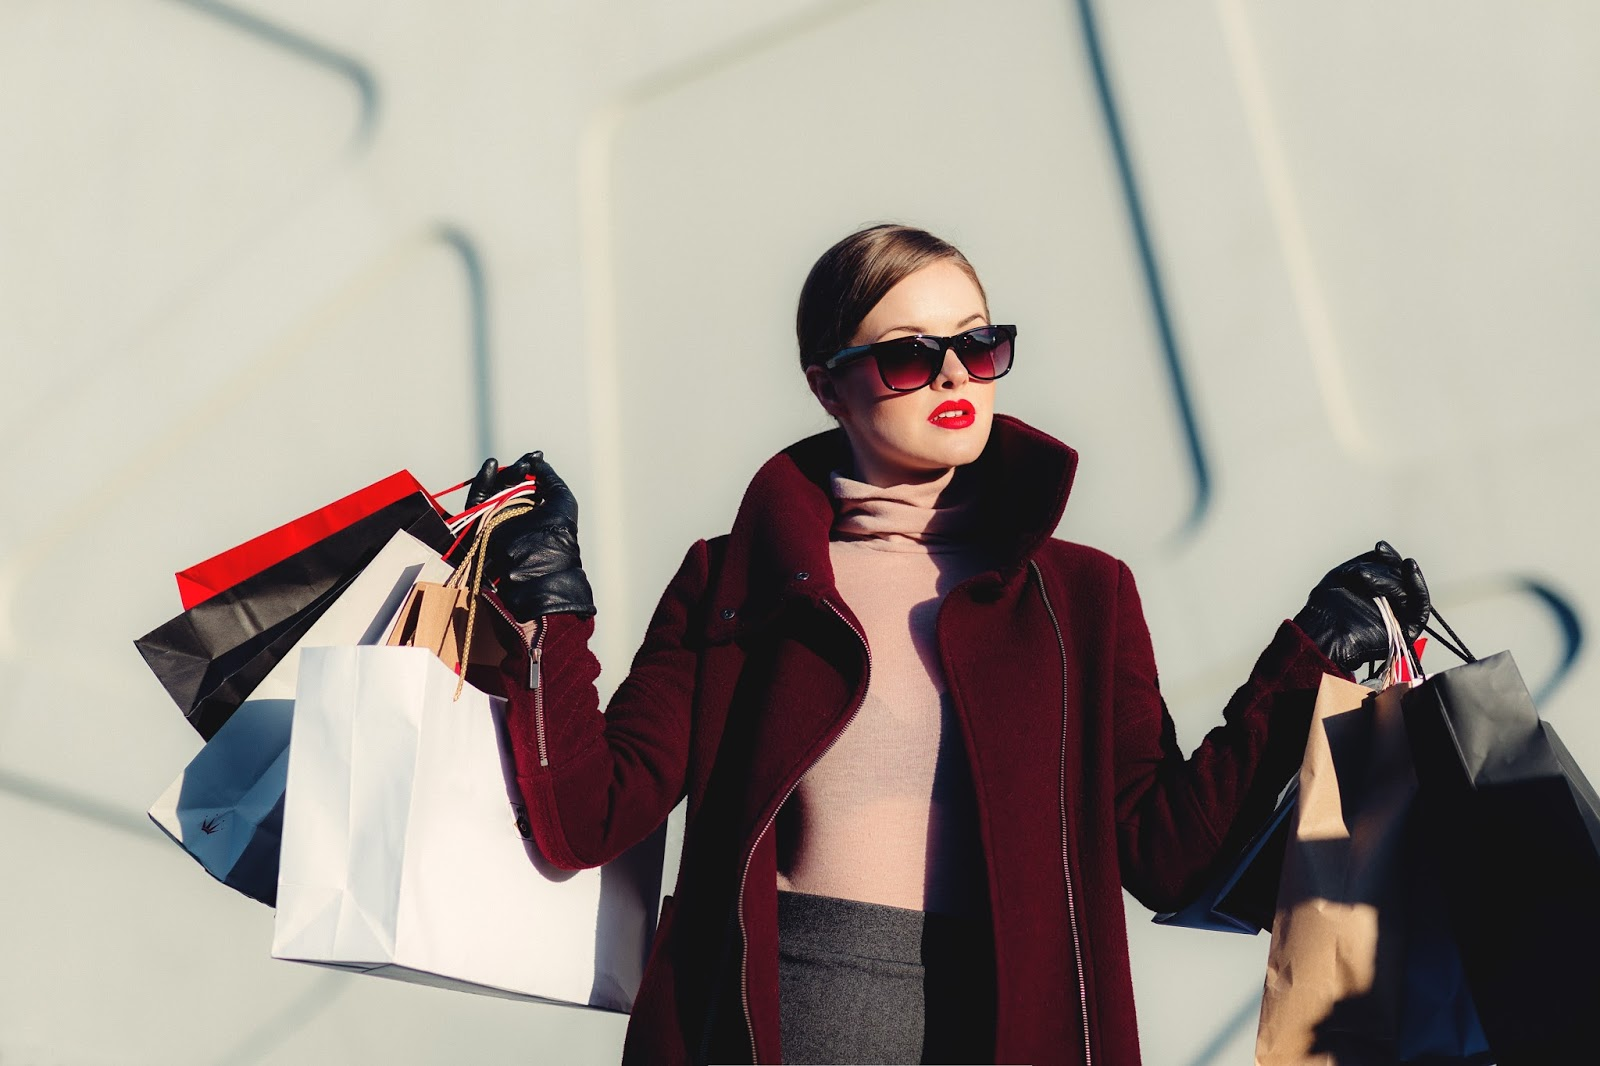 How To Break the Bad Habit of Compulsive Shopping